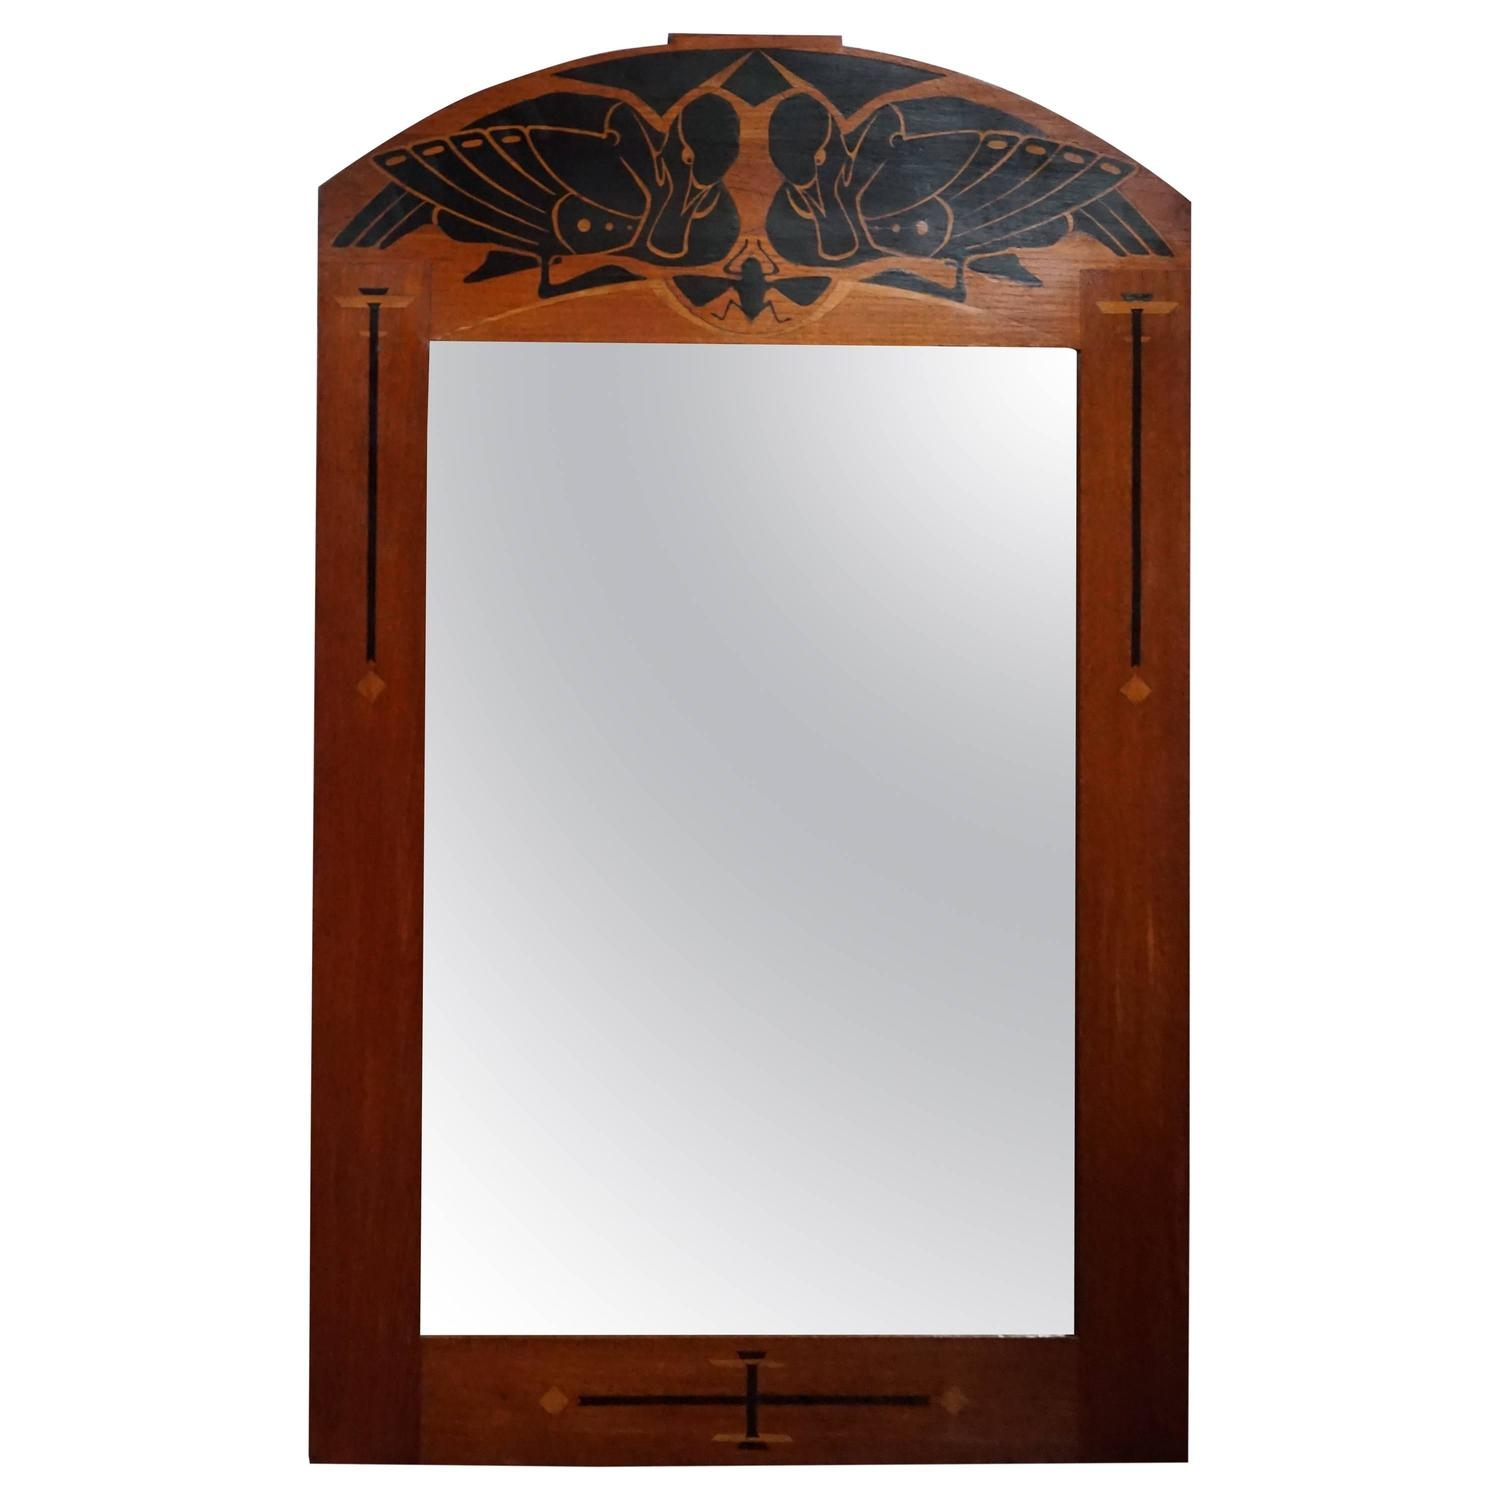 Mirrors for sale cm 100 mirror furniture for sale grey for Mirrors for sale